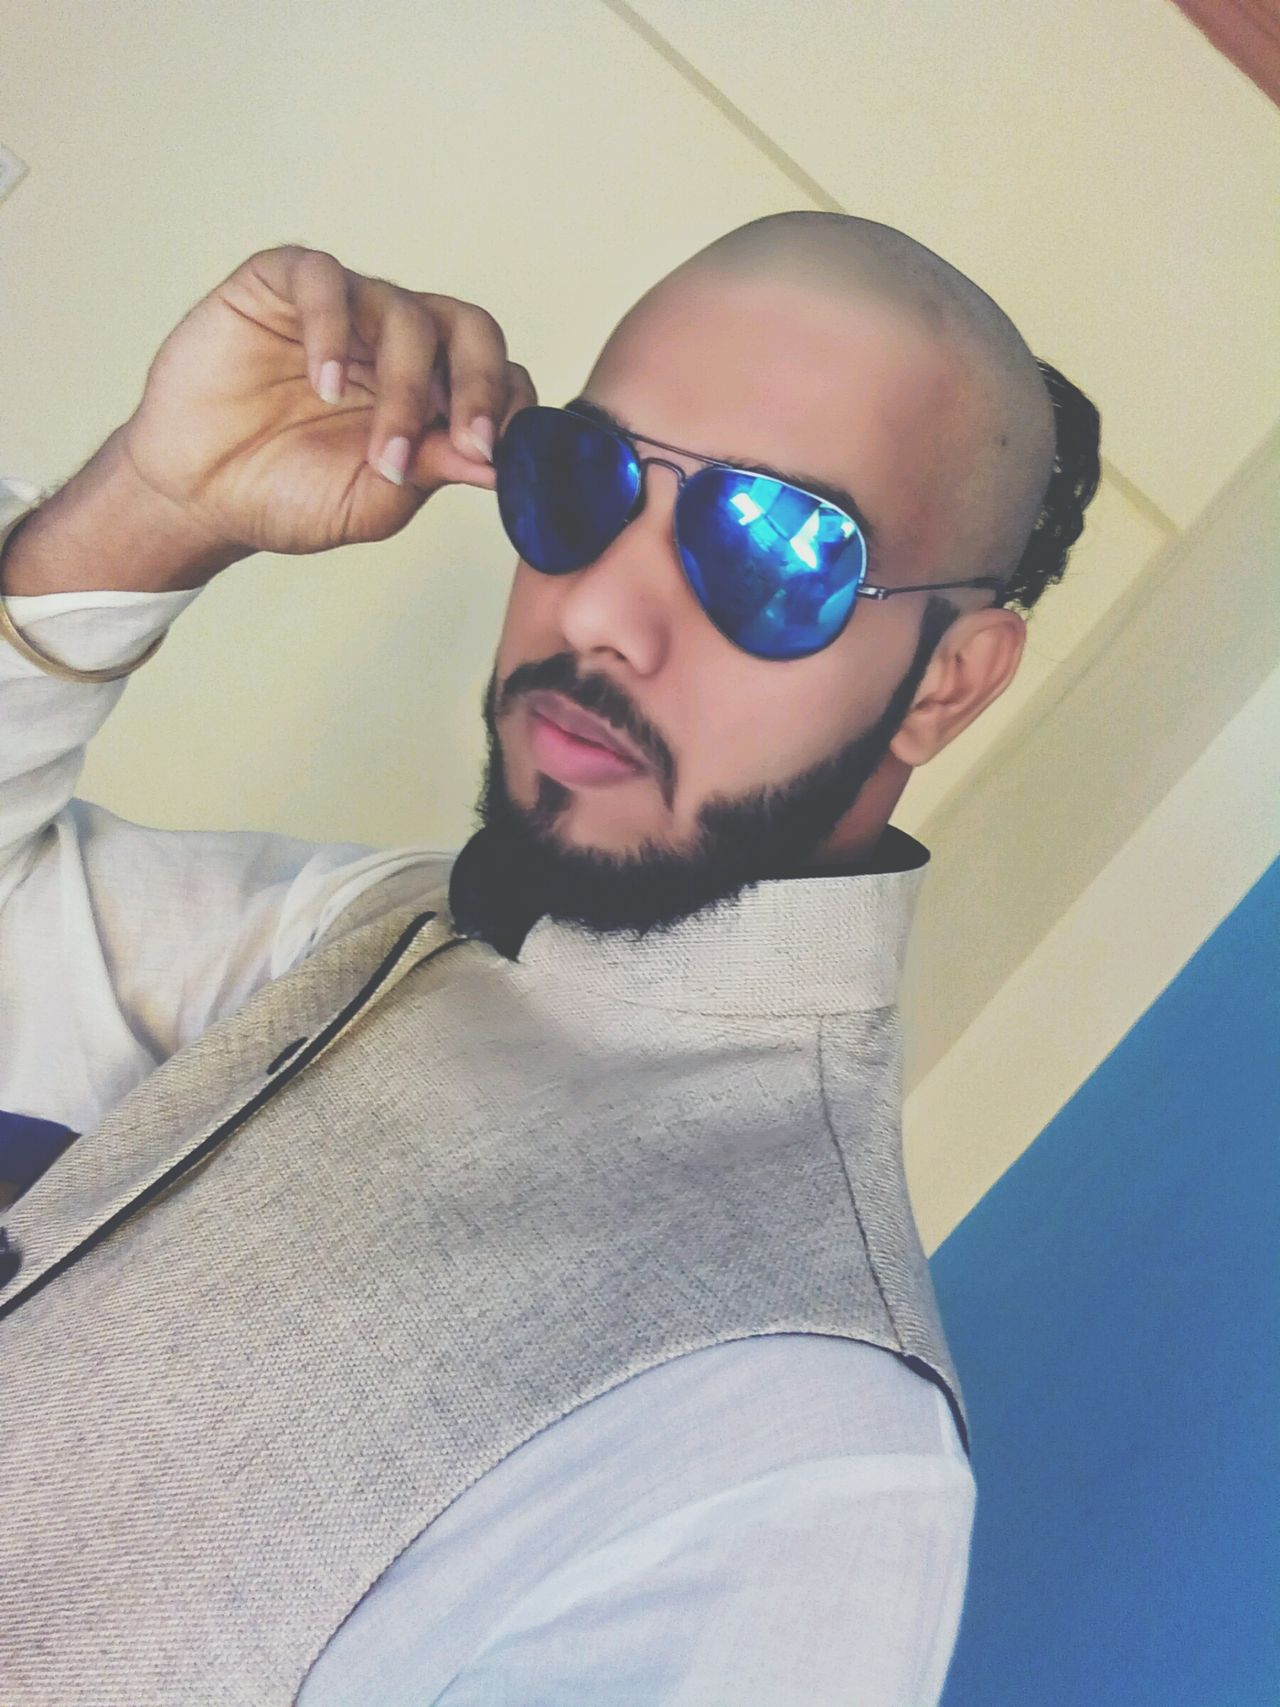 Hackerpandit Saurabh Dubey Saurabh Sunglasses One Young Man Only Only Men One Man Only Lifestyles People Cyberspace Dangerous Uniqueness Lion King  Hacker Gangster Rockstar Photography Indian Indian People Glasses Style Style ✌ Style And Fashion Modeling